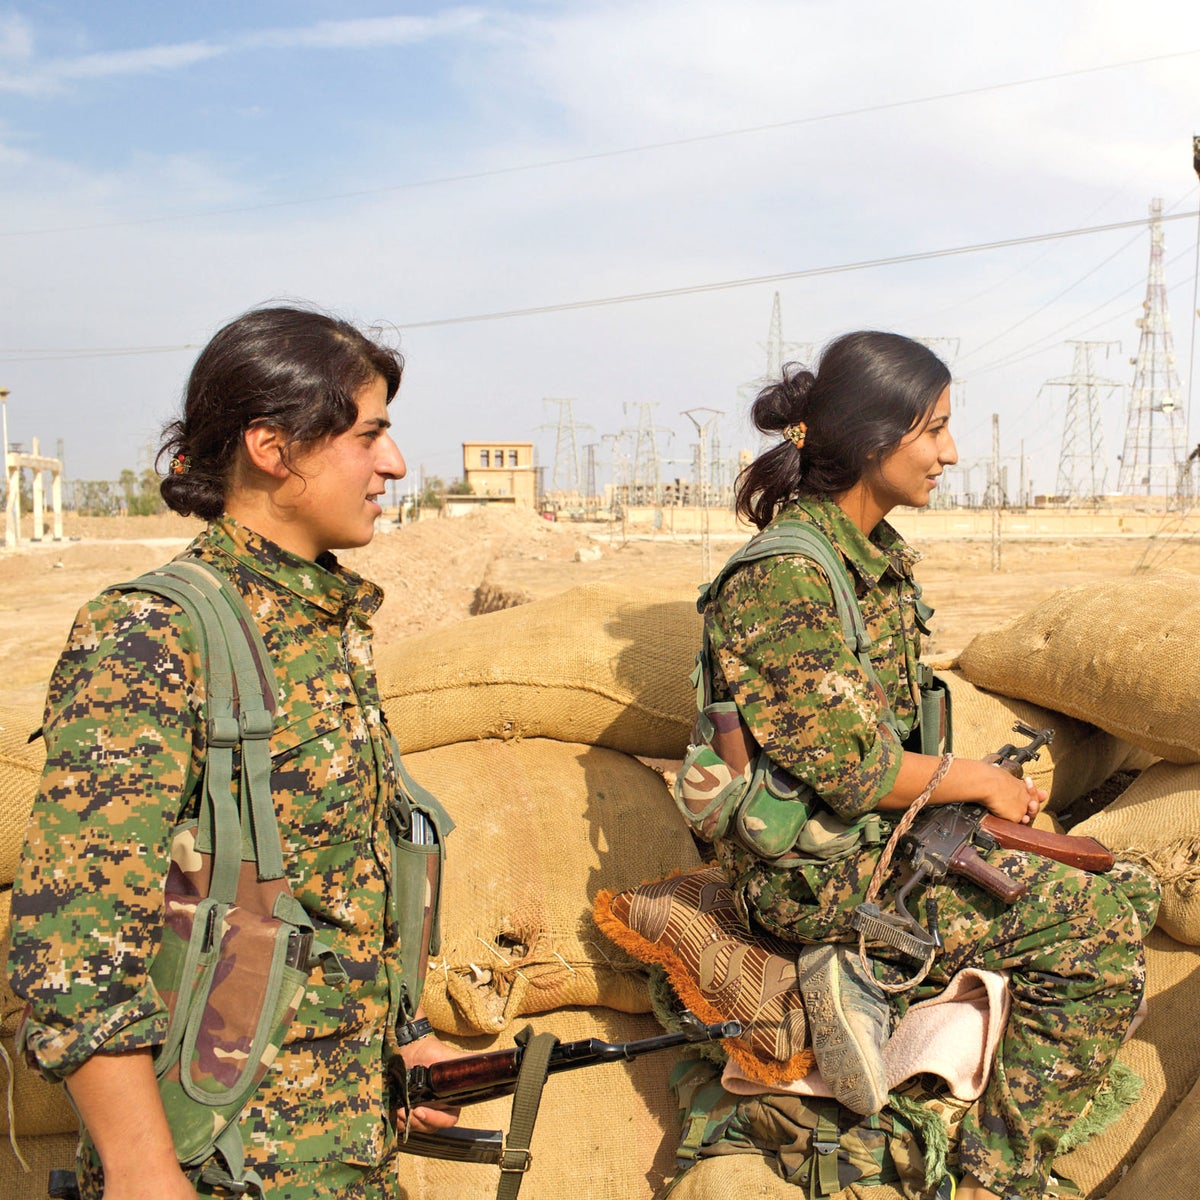 YPJ soldiers in the Rojava army.